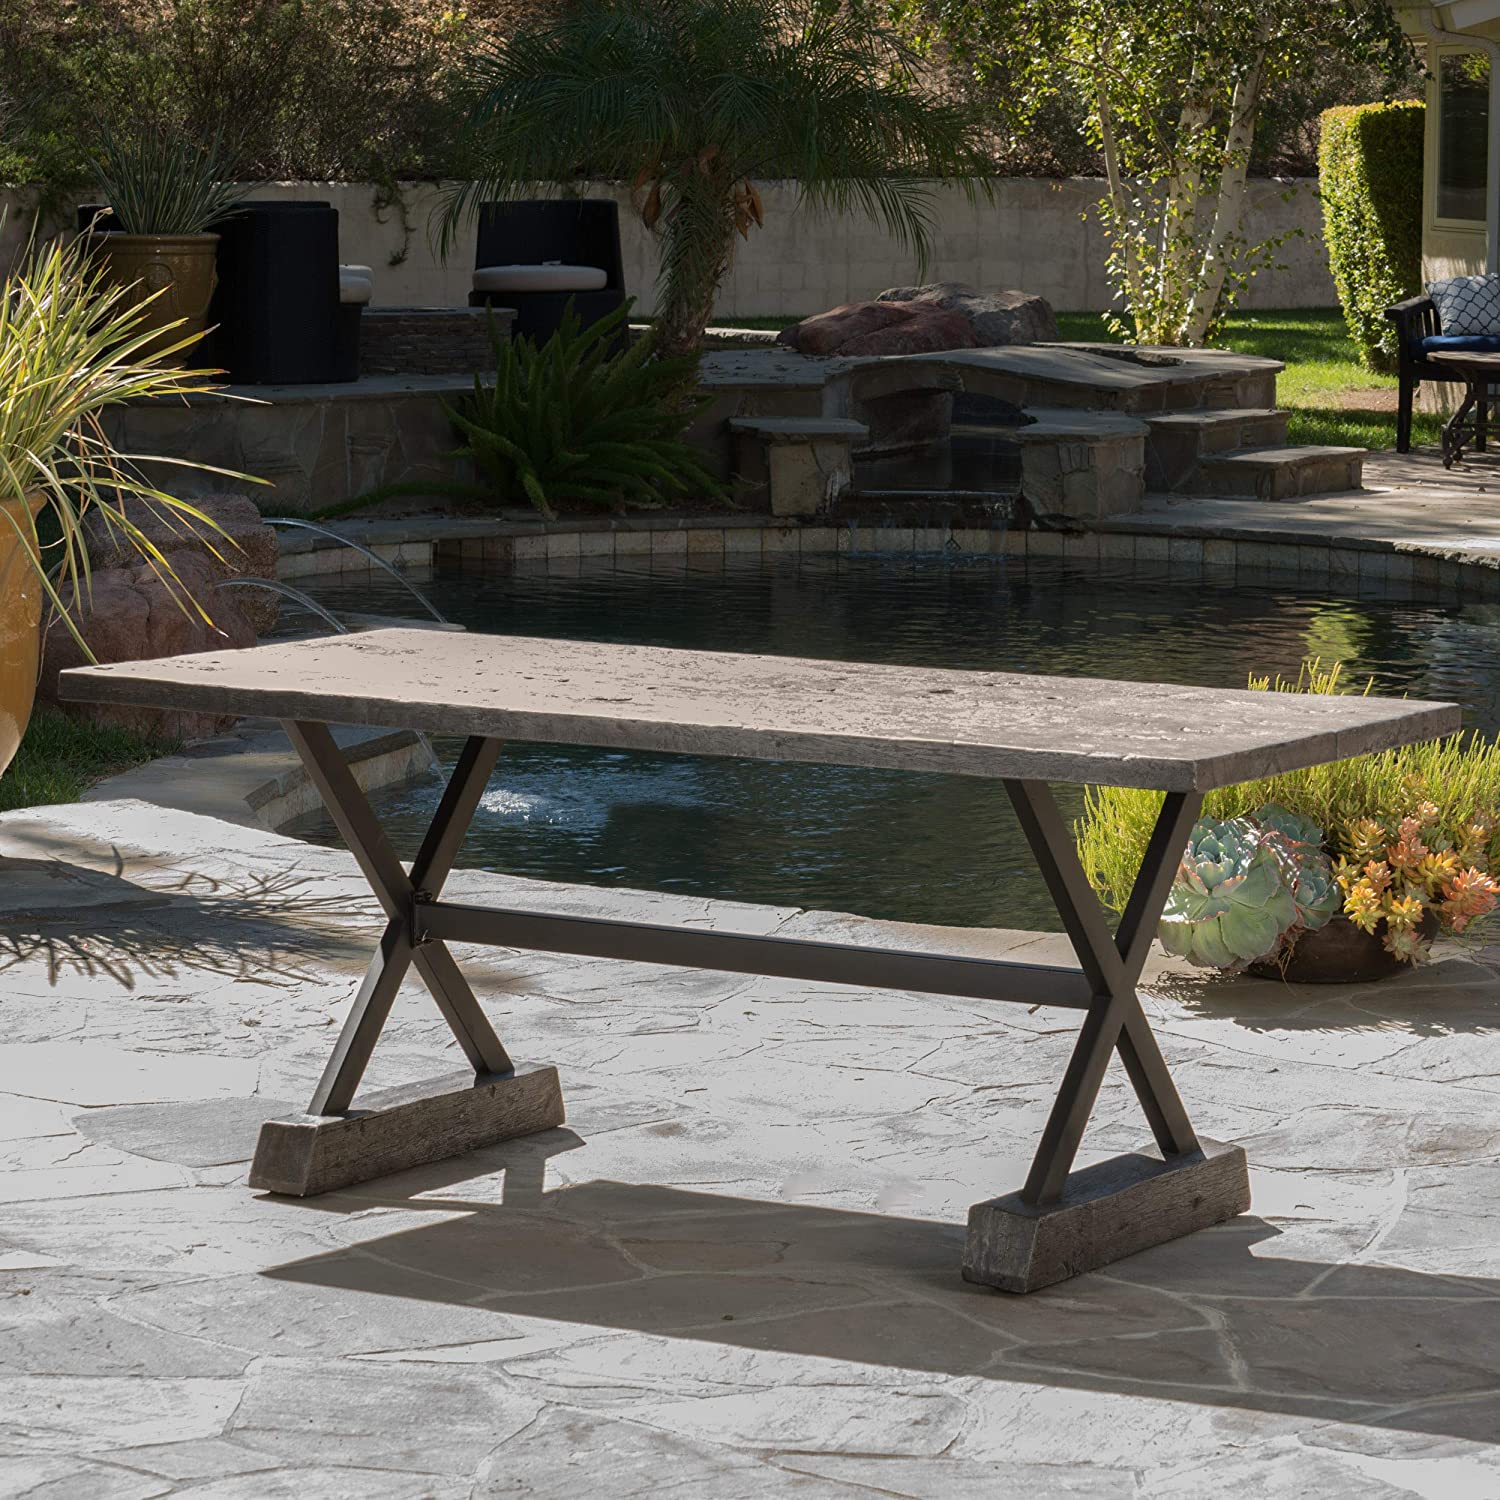 Amazon.com : GDF Studio Lavelle Brown Magnesium Oxide Dining Table : Garden & Outdoor